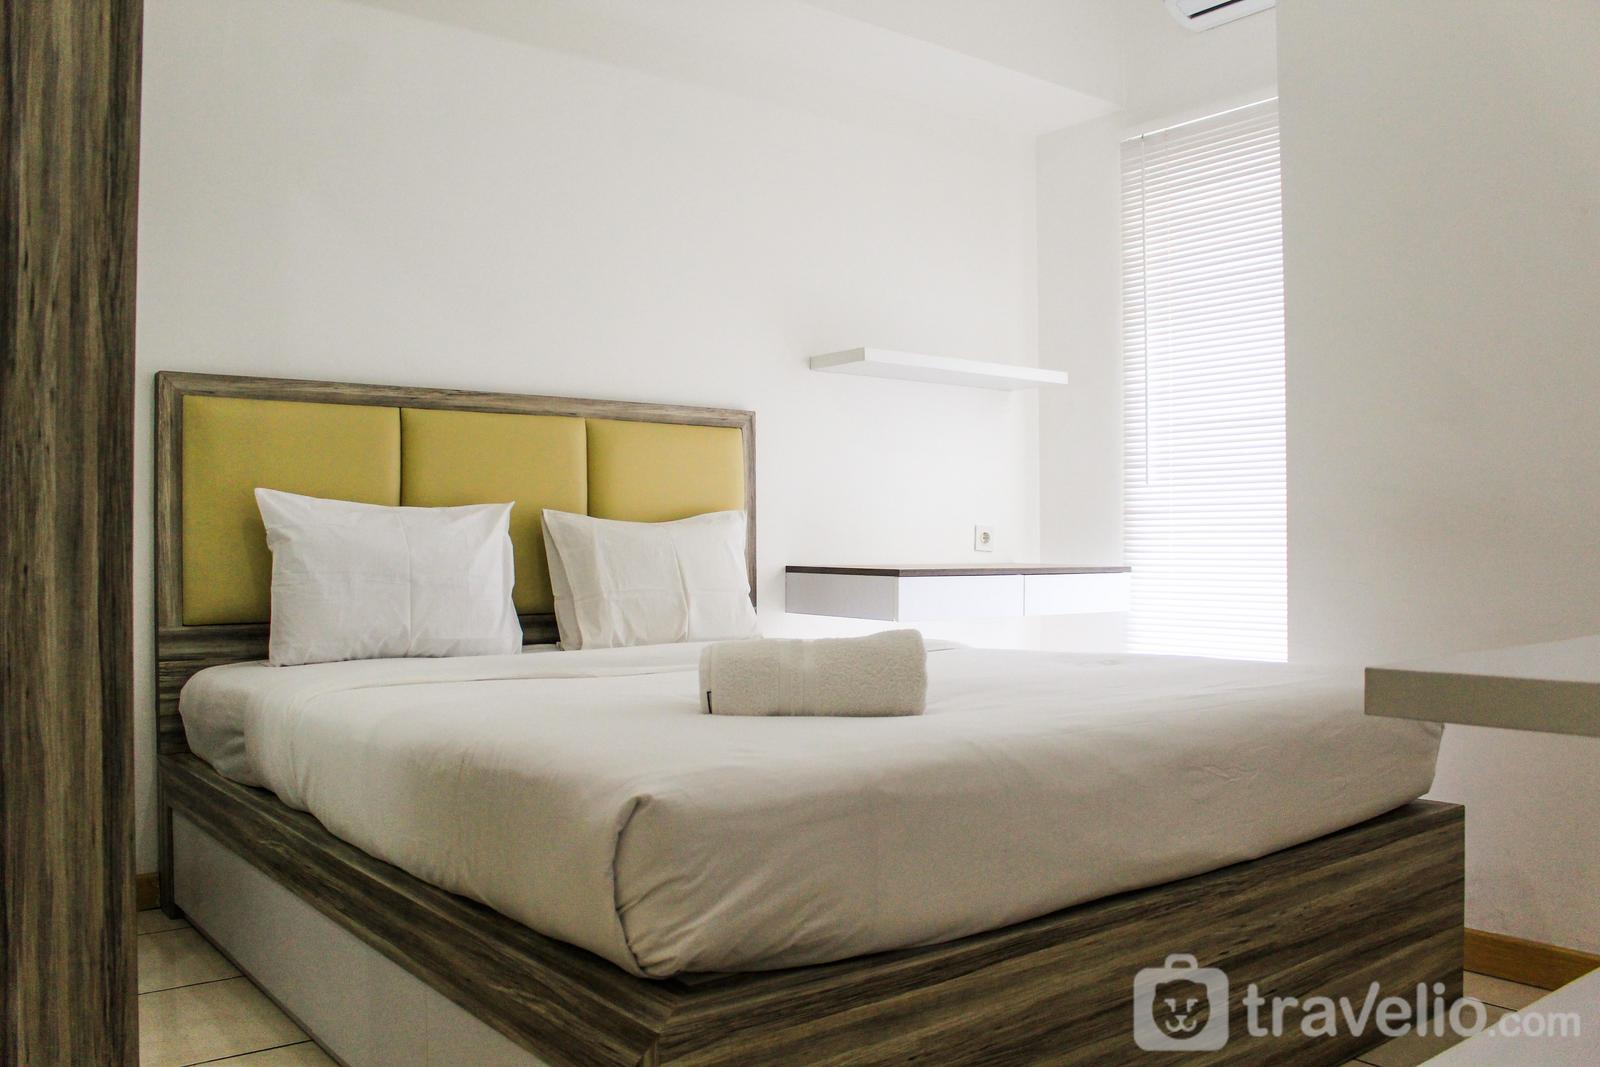 M Town Residence - Relaxing 2BR Apartment at M-Town Residence By Travelio